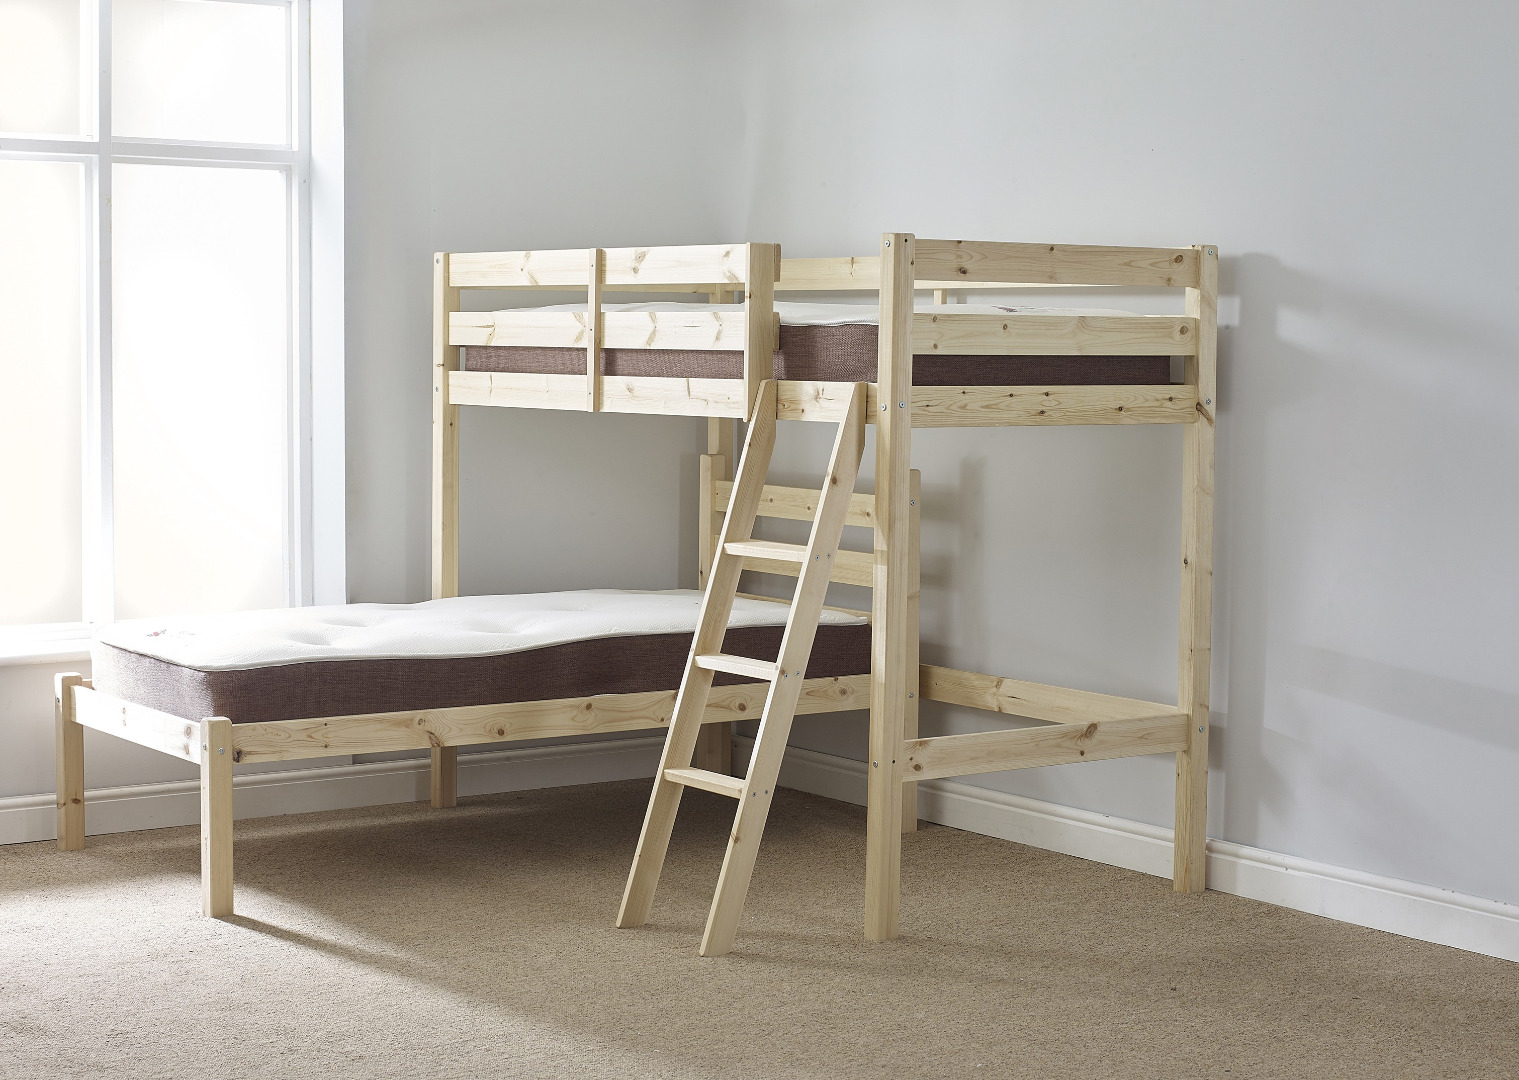 Picture of: Mandoline 3ft Single Heavy Duty Solid Pine L Shaped Bunk Bed